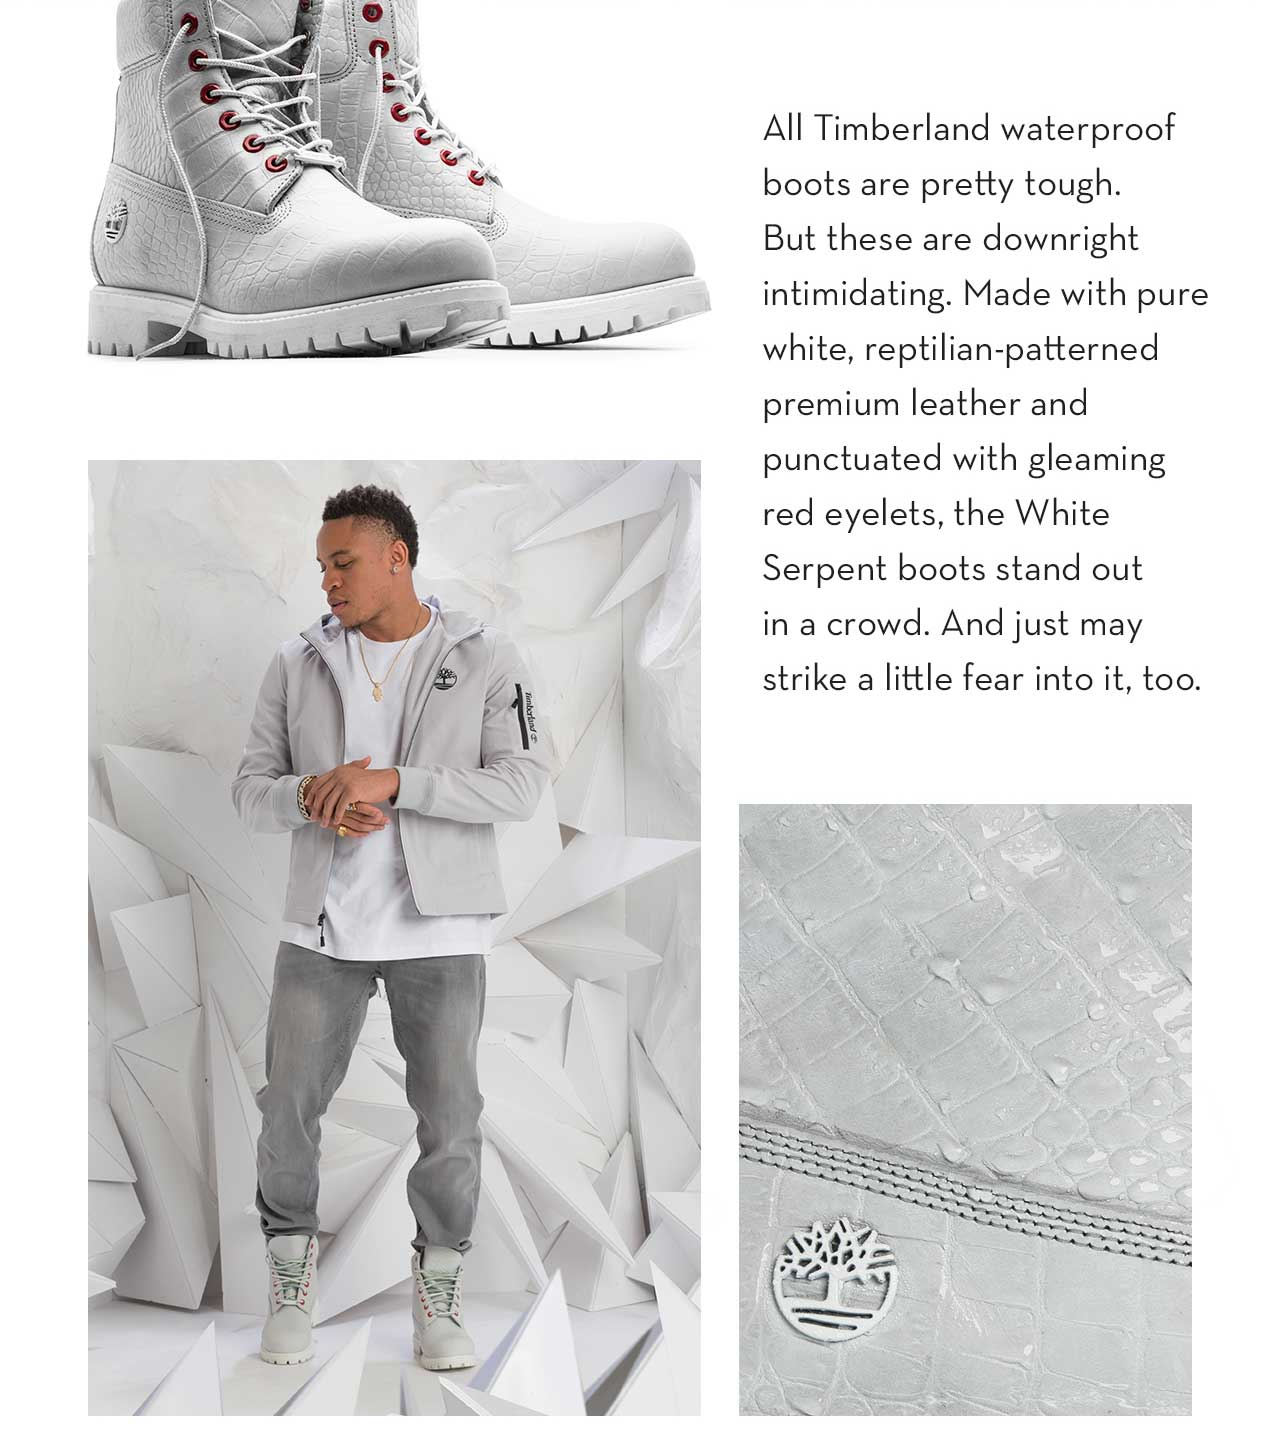 All Timberland waterproof boots are pretty tough. But these are downright intimidating. Made with pure white, reptilian-patterned premium leather and punctuated with gleaming red eyelets, the White Serpent boots stand out in a crowd. And just may strike a little fear into it, too.